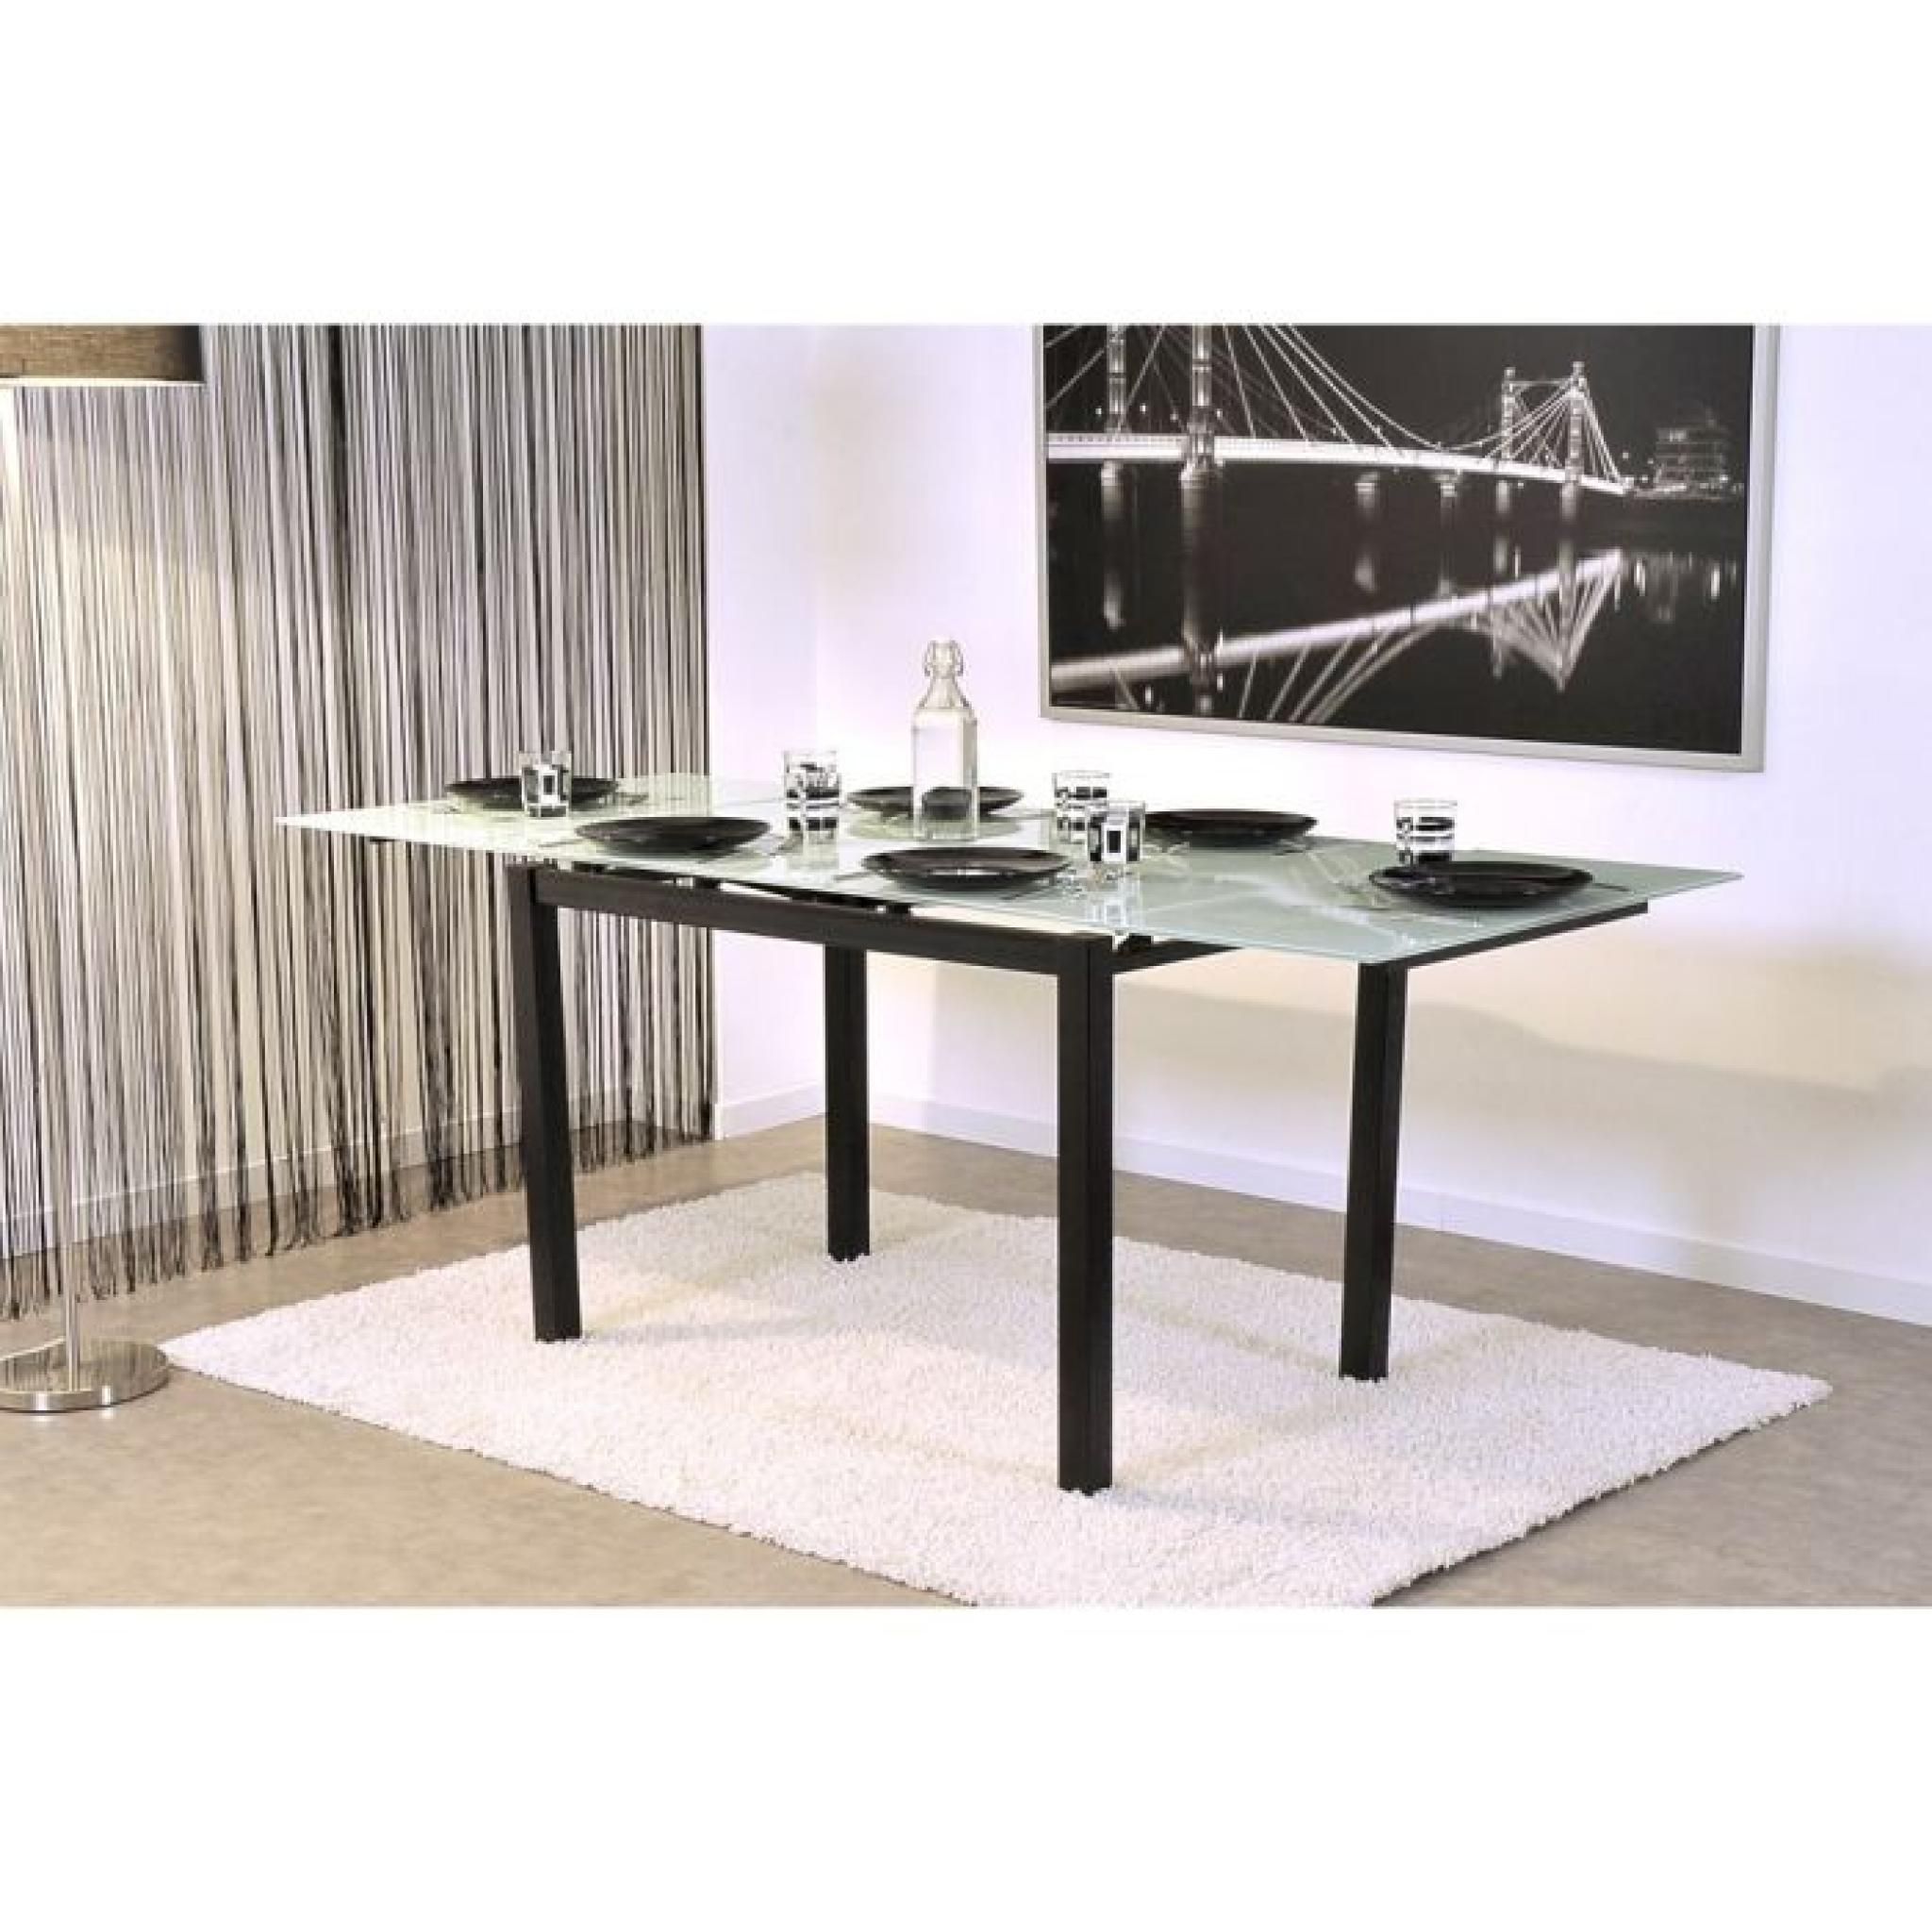 Table salle a manger 120 cm conceptions de maison for Table salle a manger 120 cm